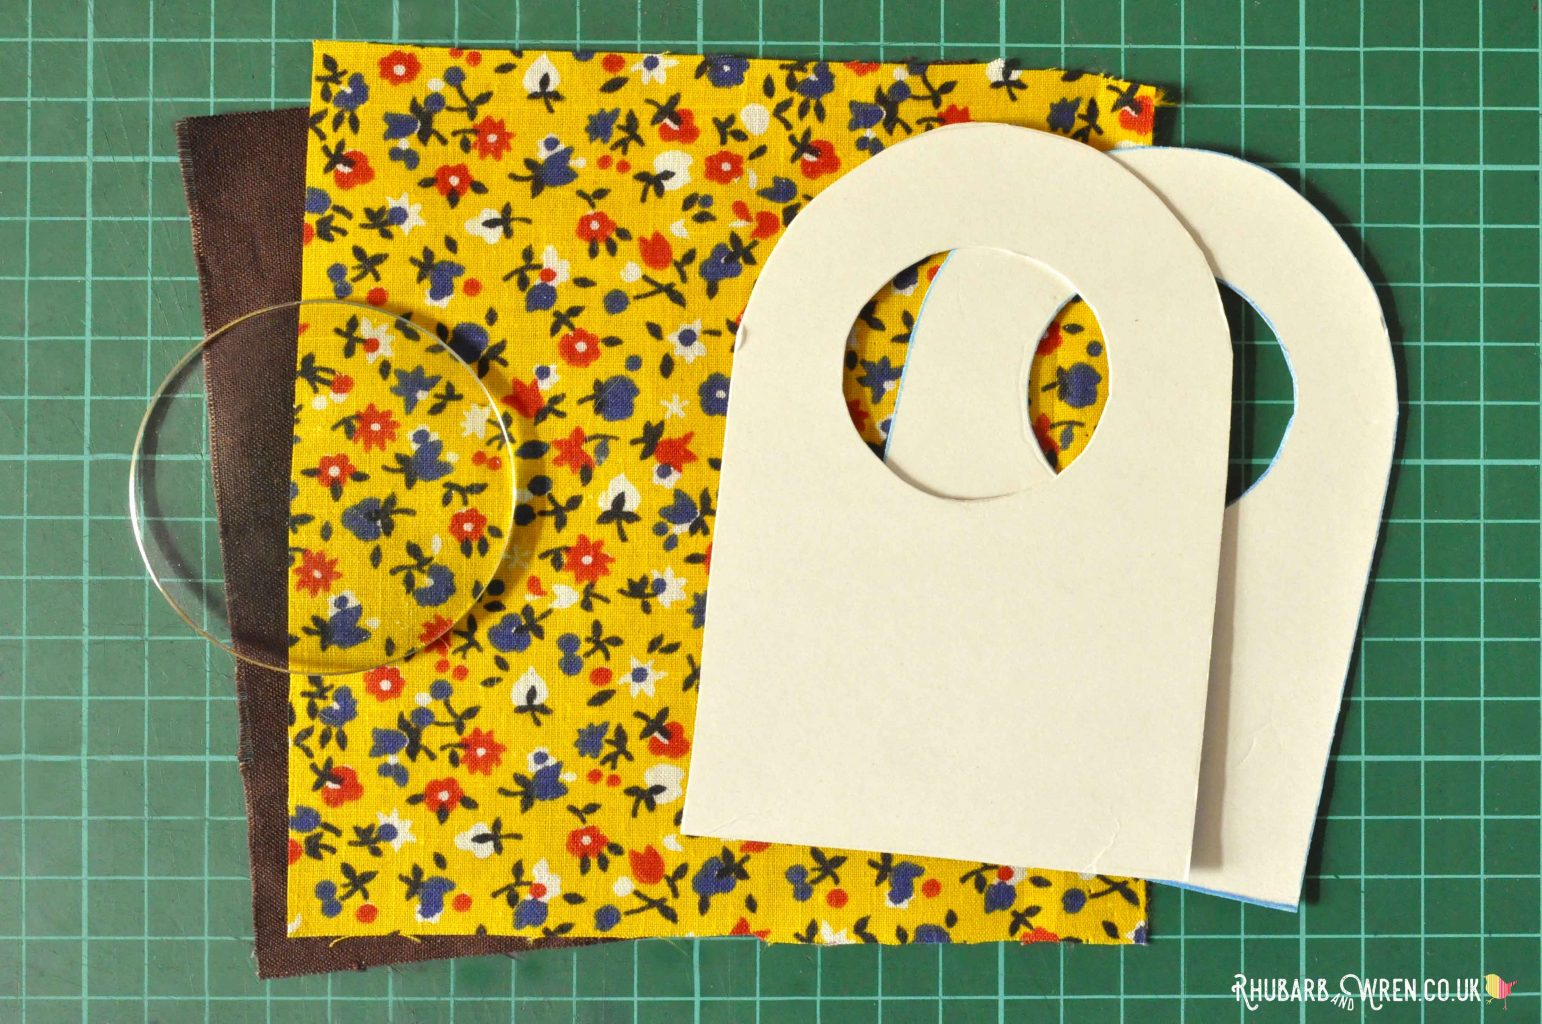 Fabric, lens and template for a diy magnifying glass